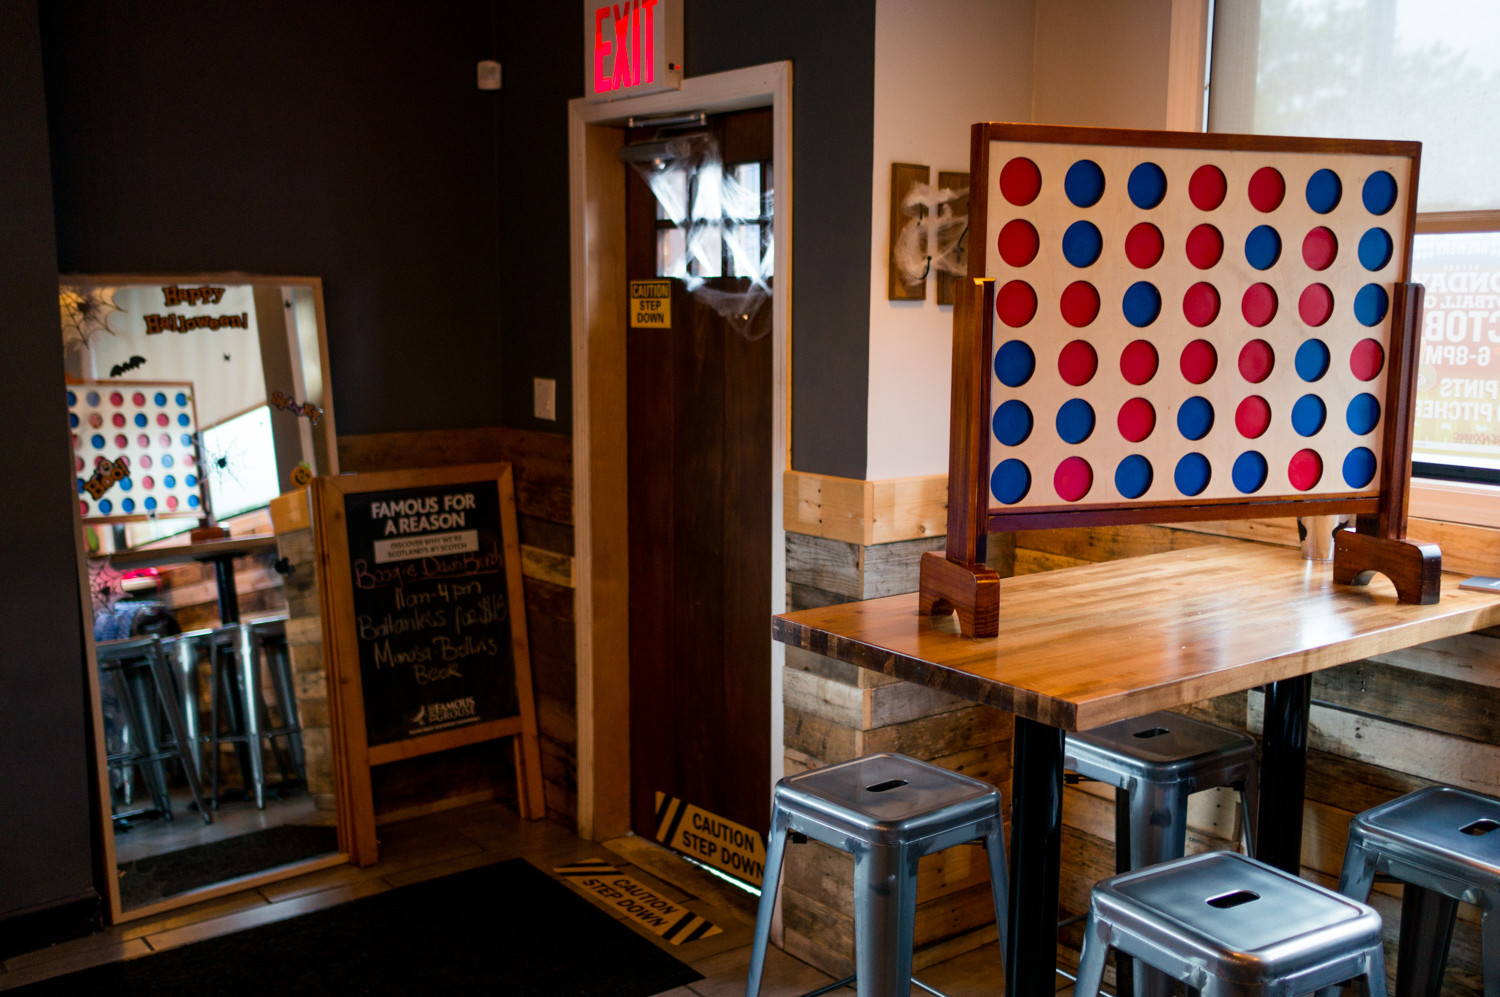 The Bronx Public has a big version of Connect Four for customers to play, something that can engage college-aged patrons and millennials.